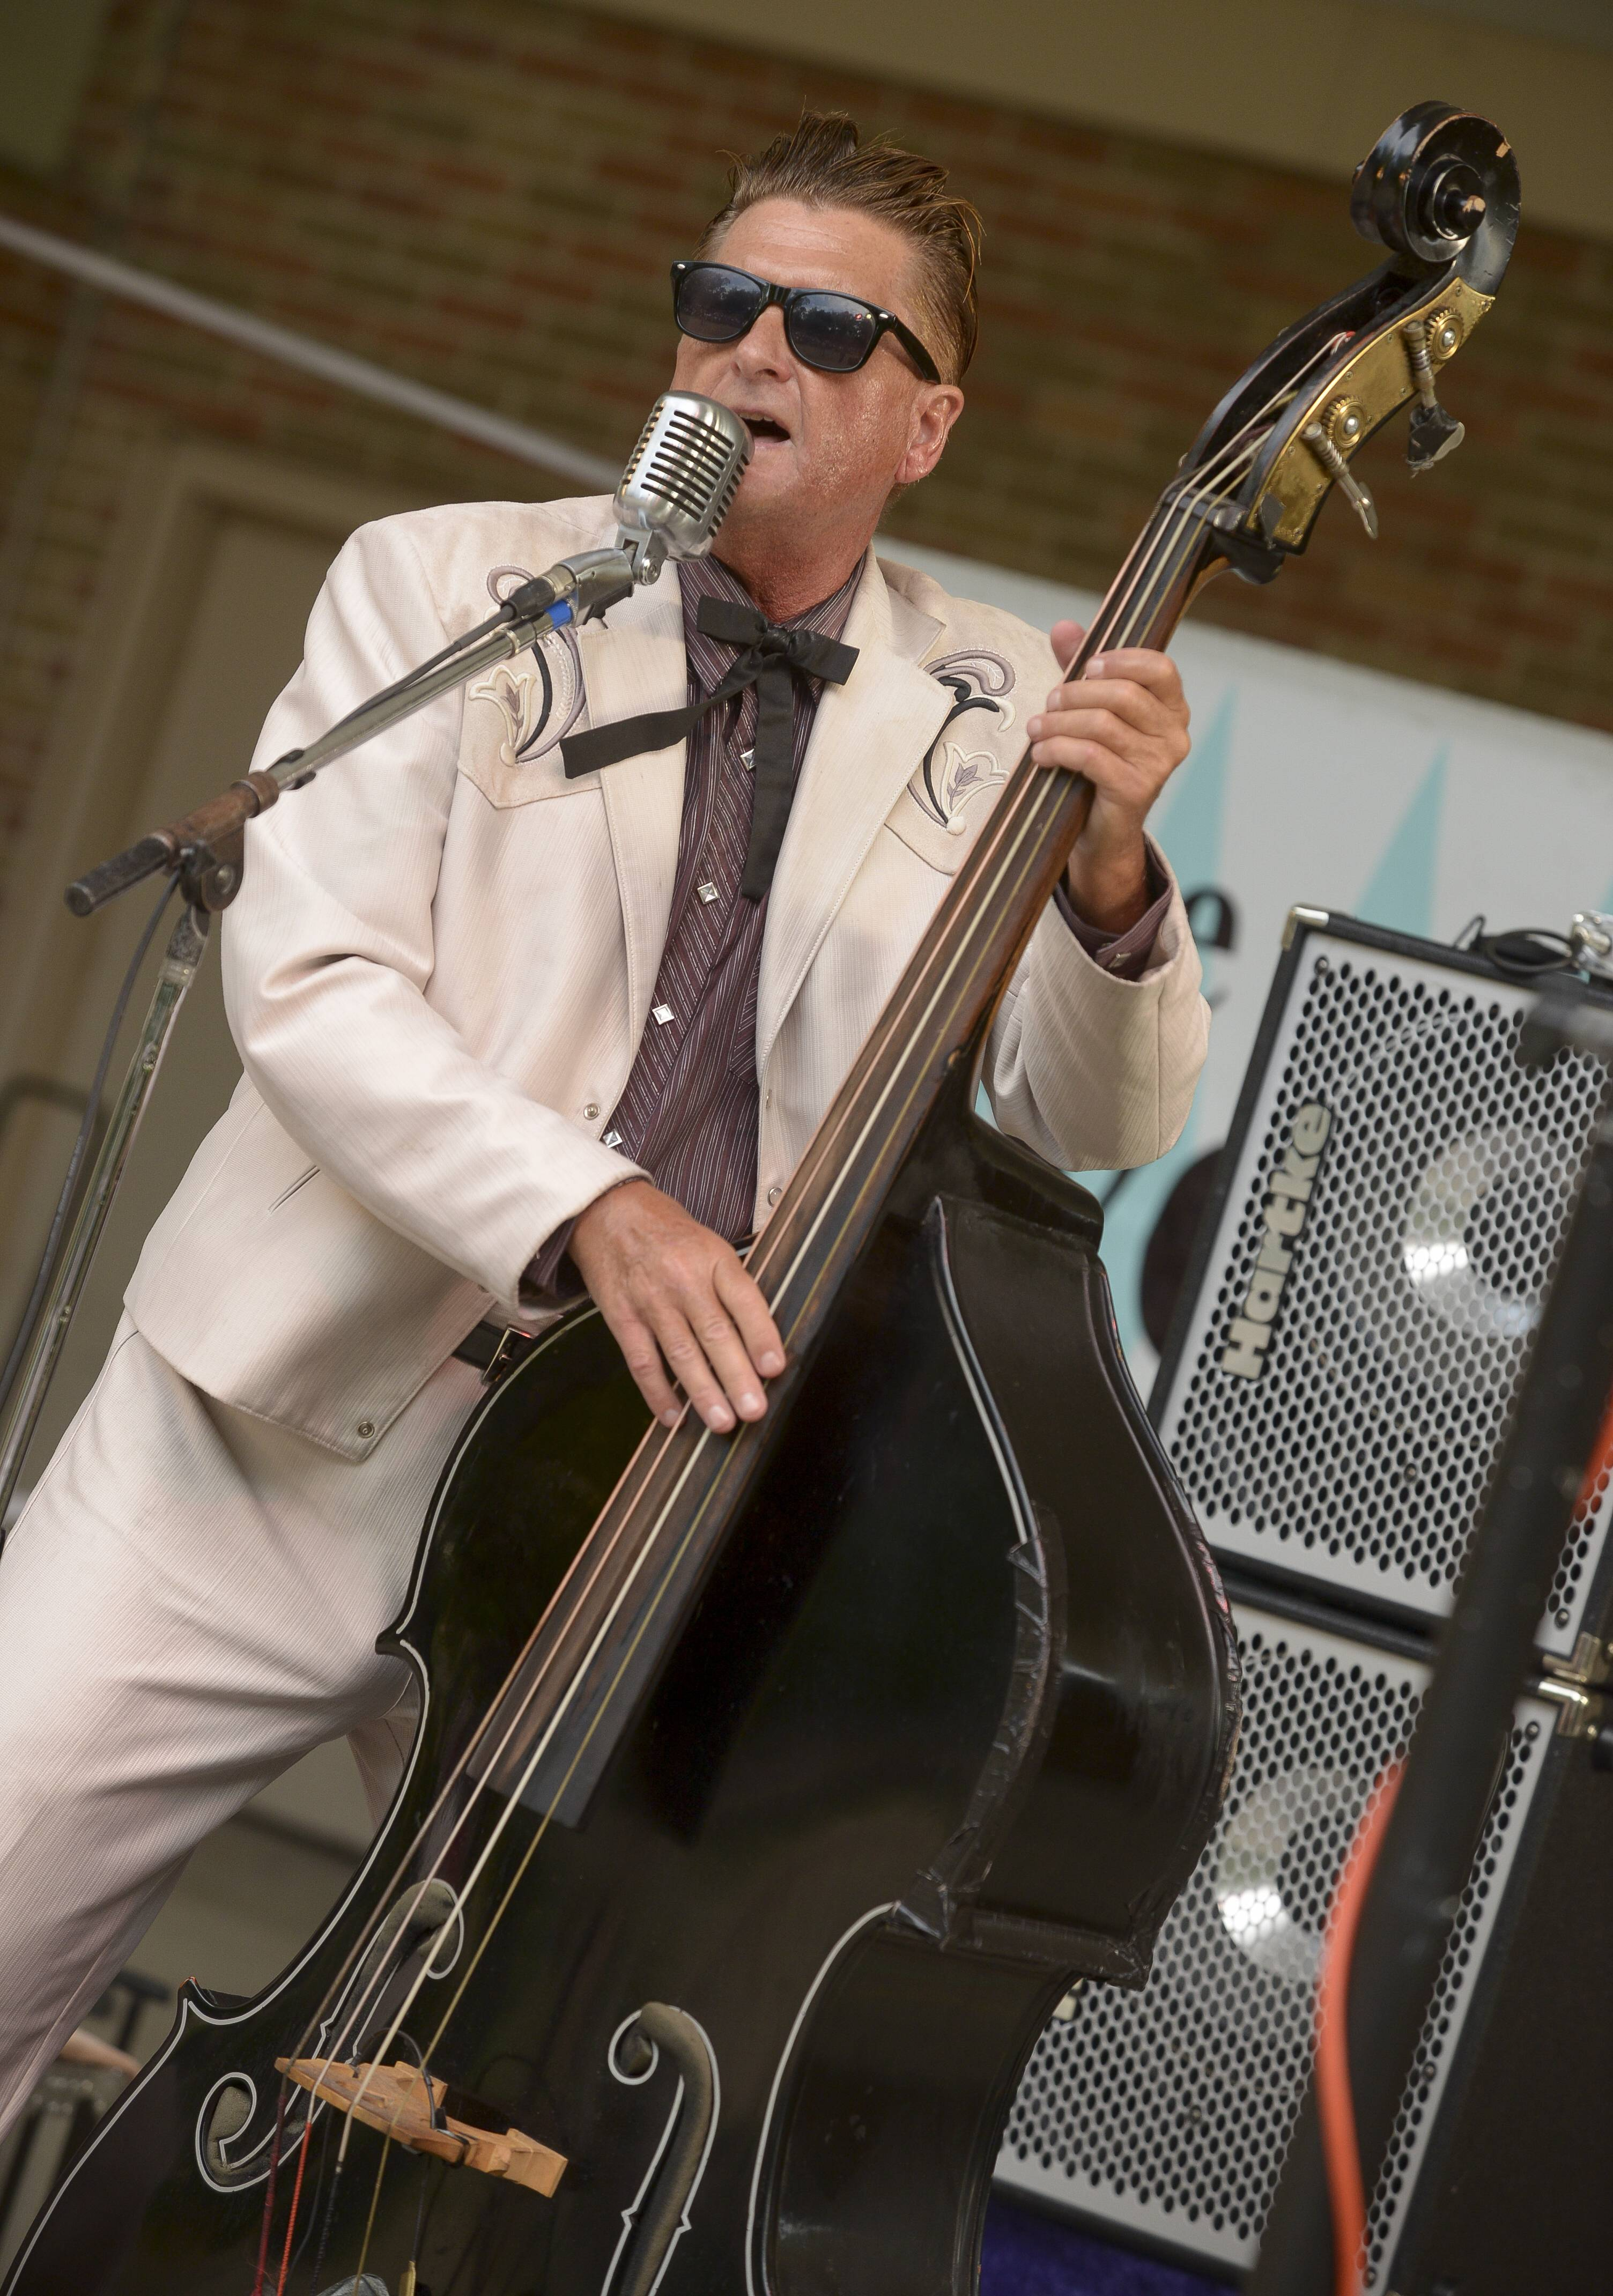 Craig Gigstad plays the stand up bass while singing with The Neverly Brothers during a recent performance. The Neverly Brothers perform rock 'n' roll oldies, including songs from the Big Bopper, Buddy Holly, Roy Orbinson, Chuck Berry and Elvis. The band will perform at 4 p.m. Sunday at the Kane County Fair in St. Charles.